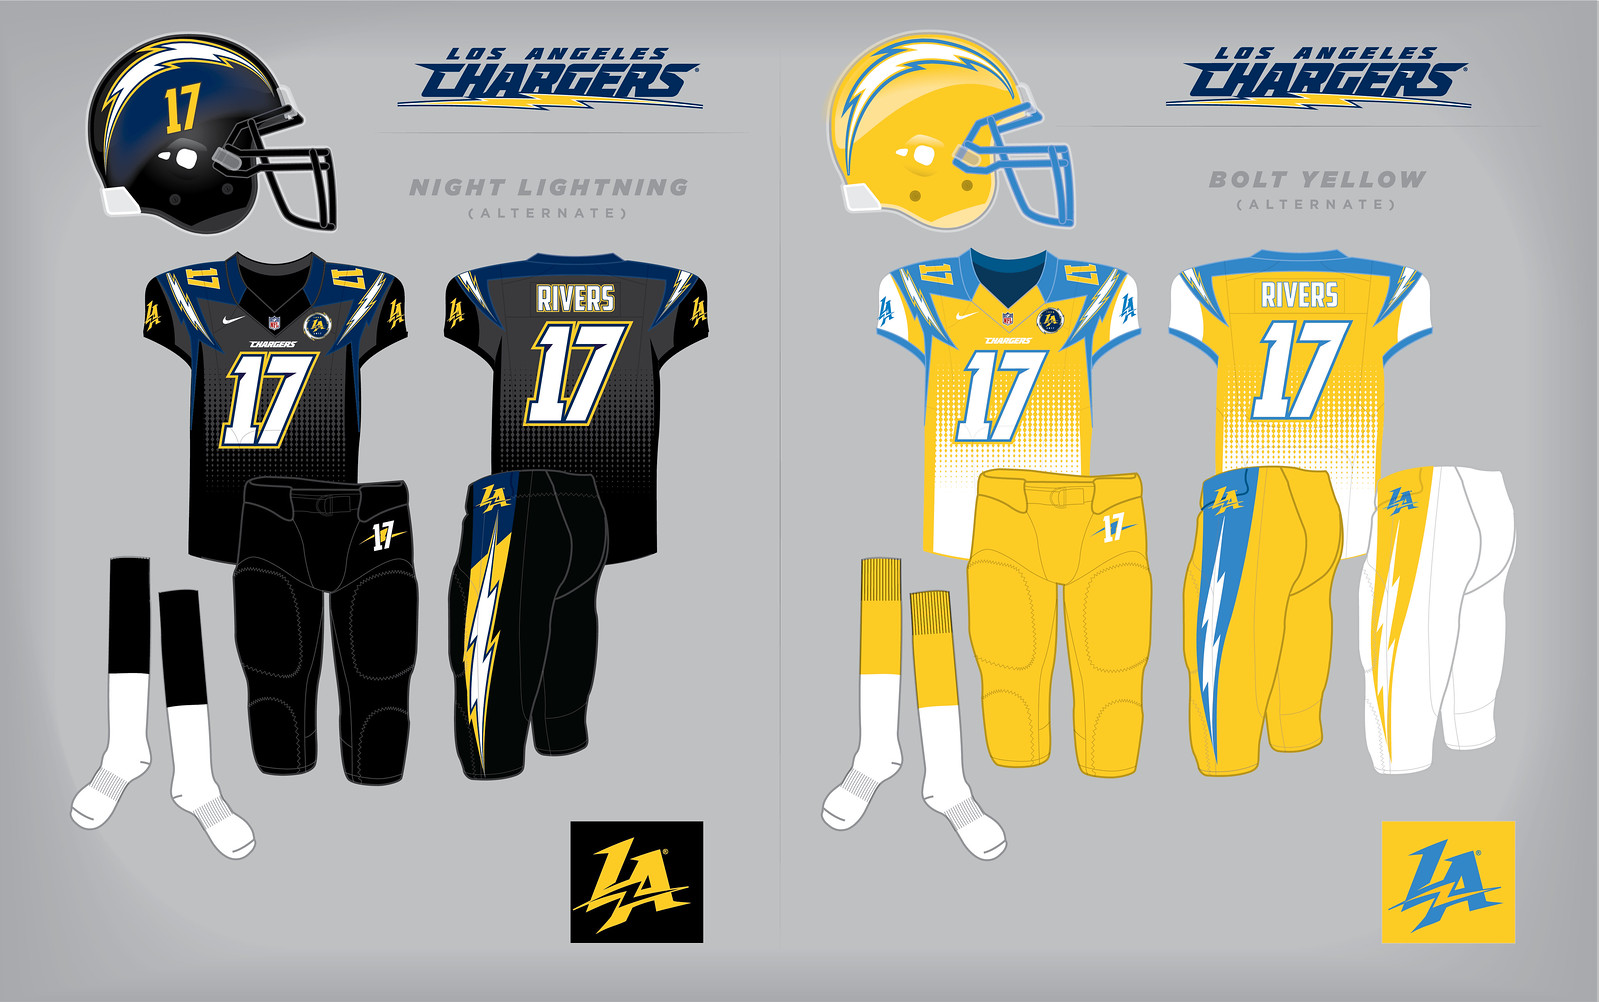 d31c519bf Uni Watch delivers the winning entries in the Chargers redesign contest